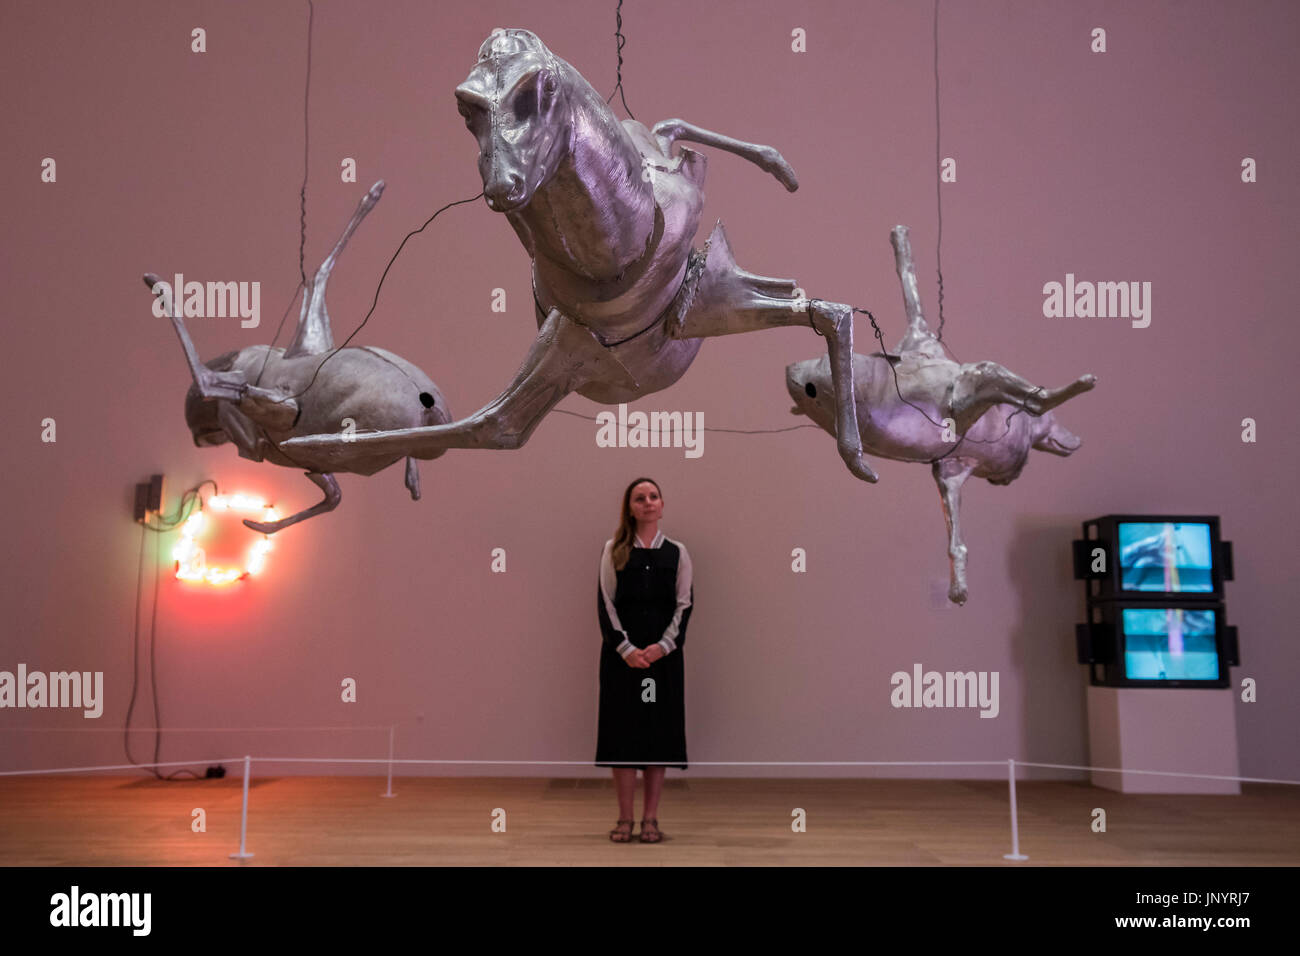 Bruce Nauman Sculpture High Resolution Stock Photography And Images Alamy